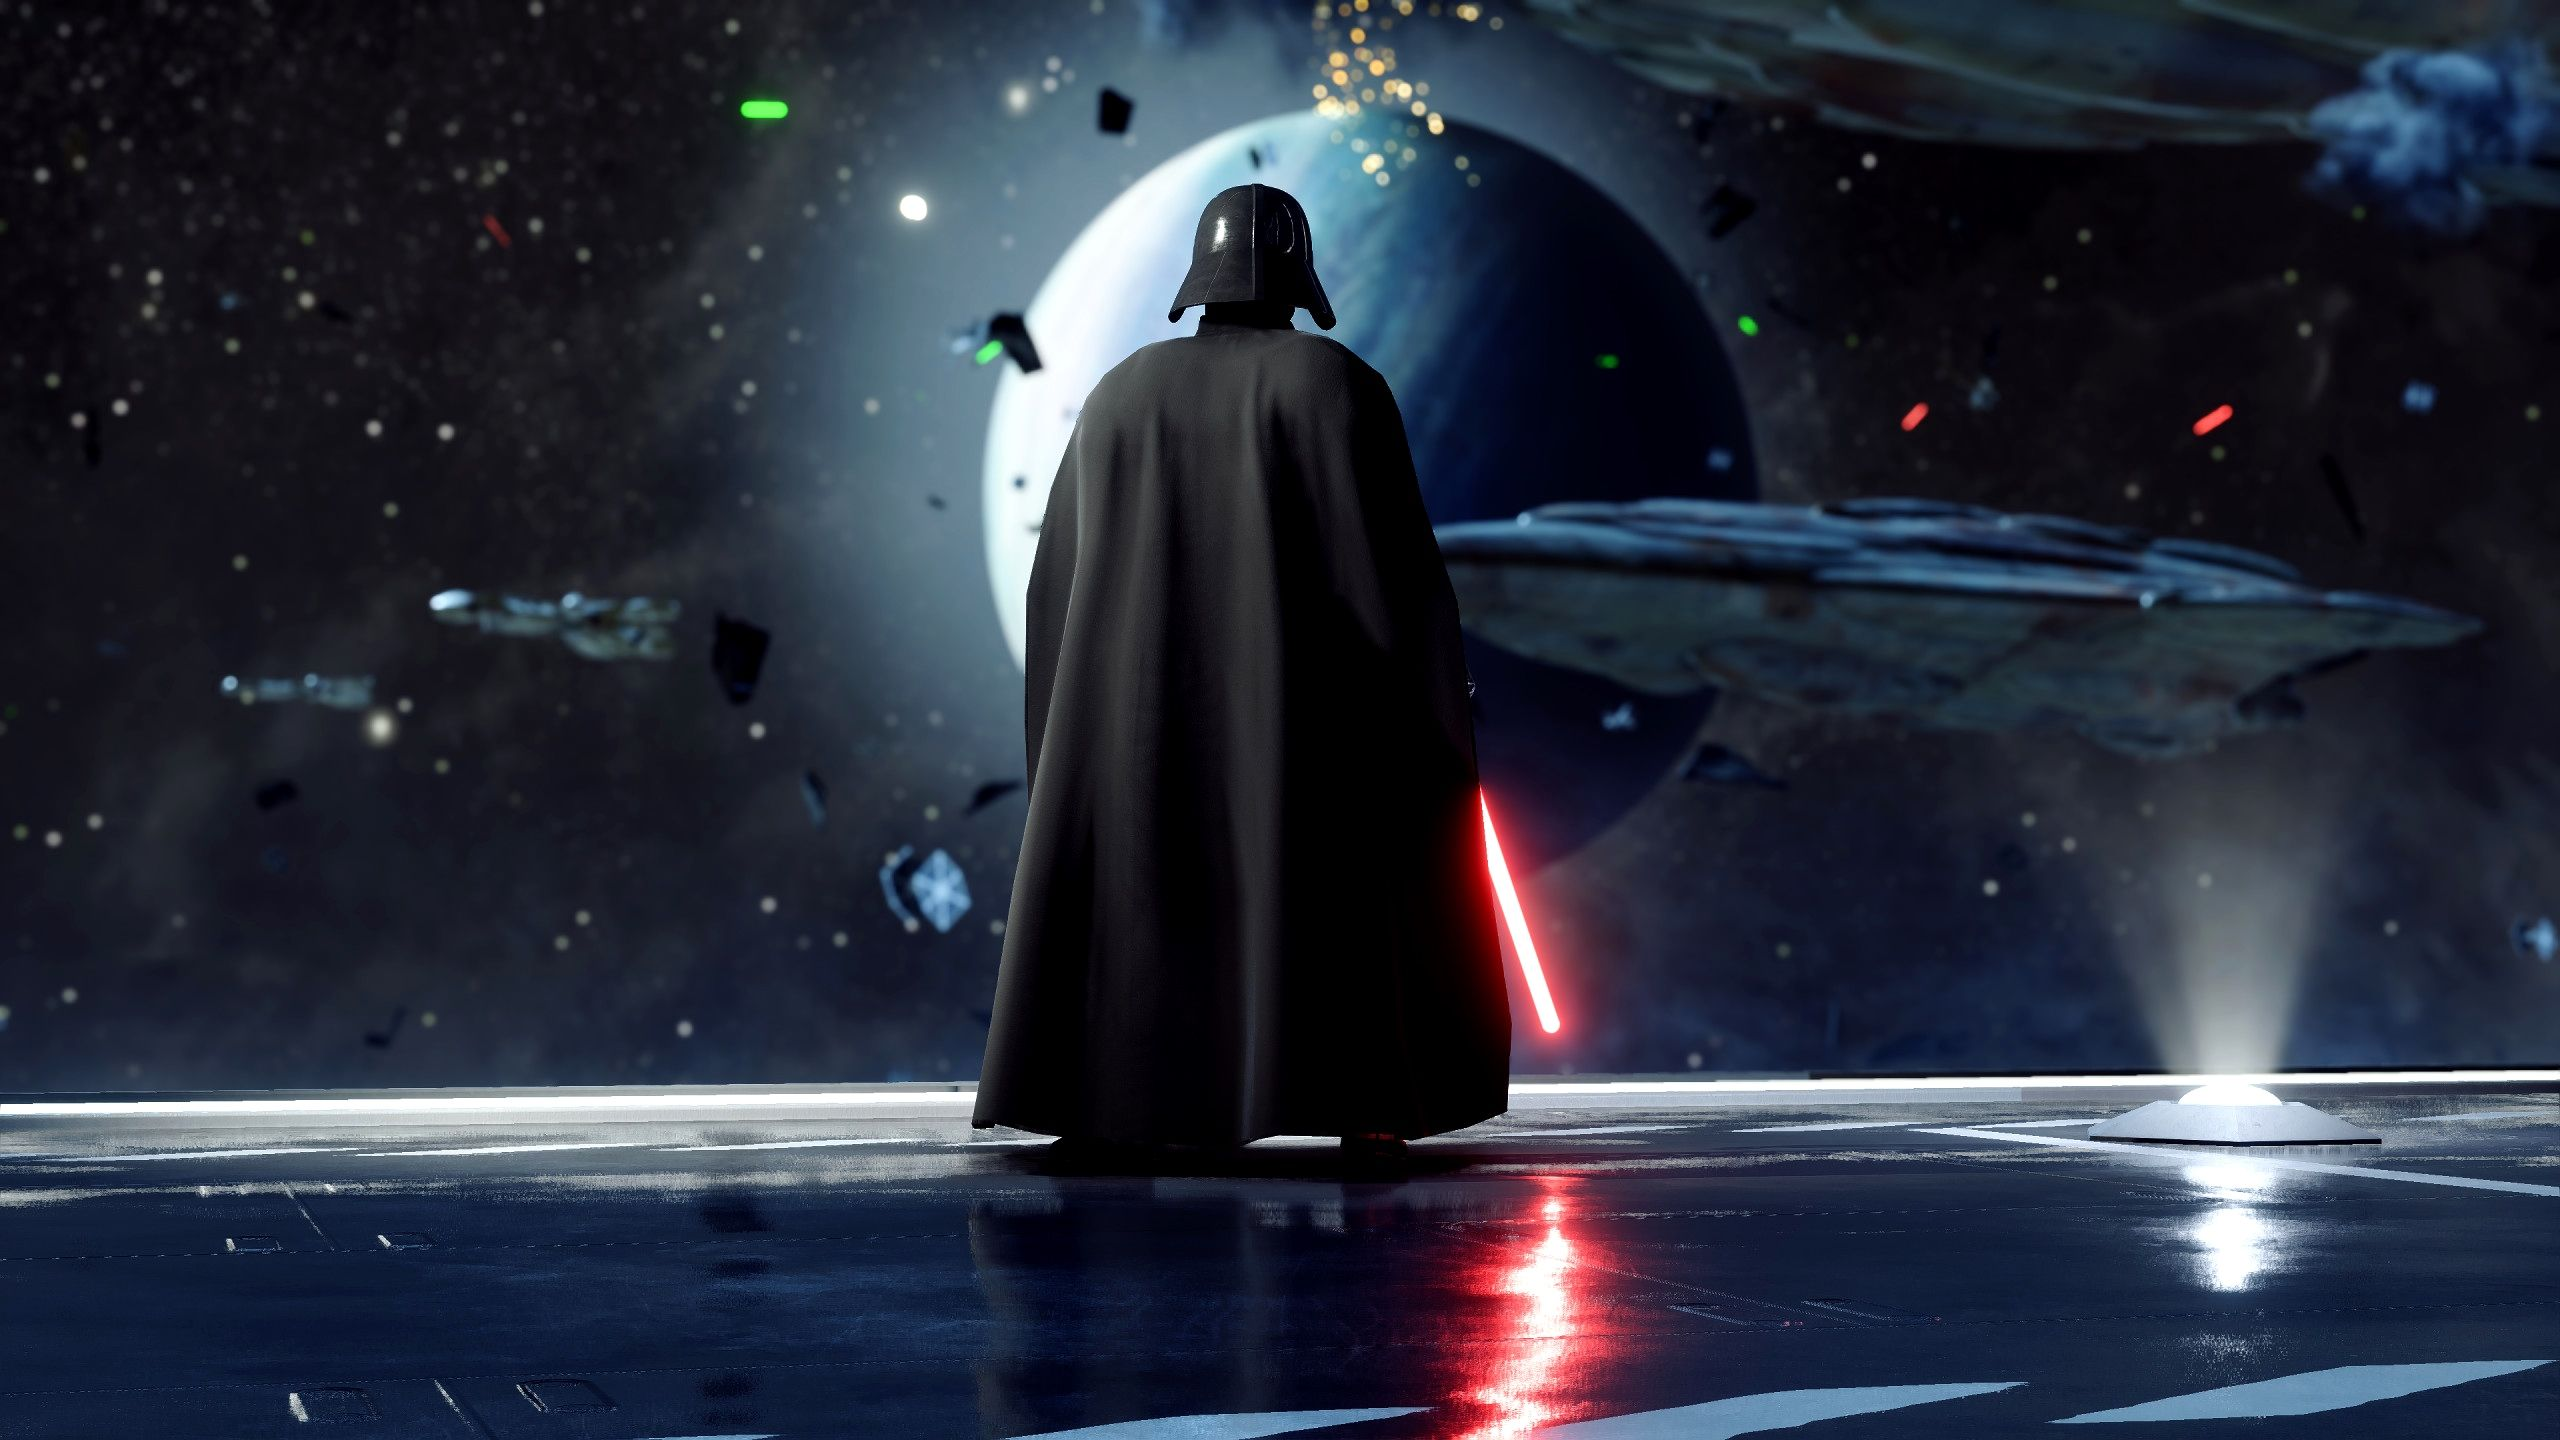 Darth Vader 4k Wallpaper Pc Gallery Di 2020